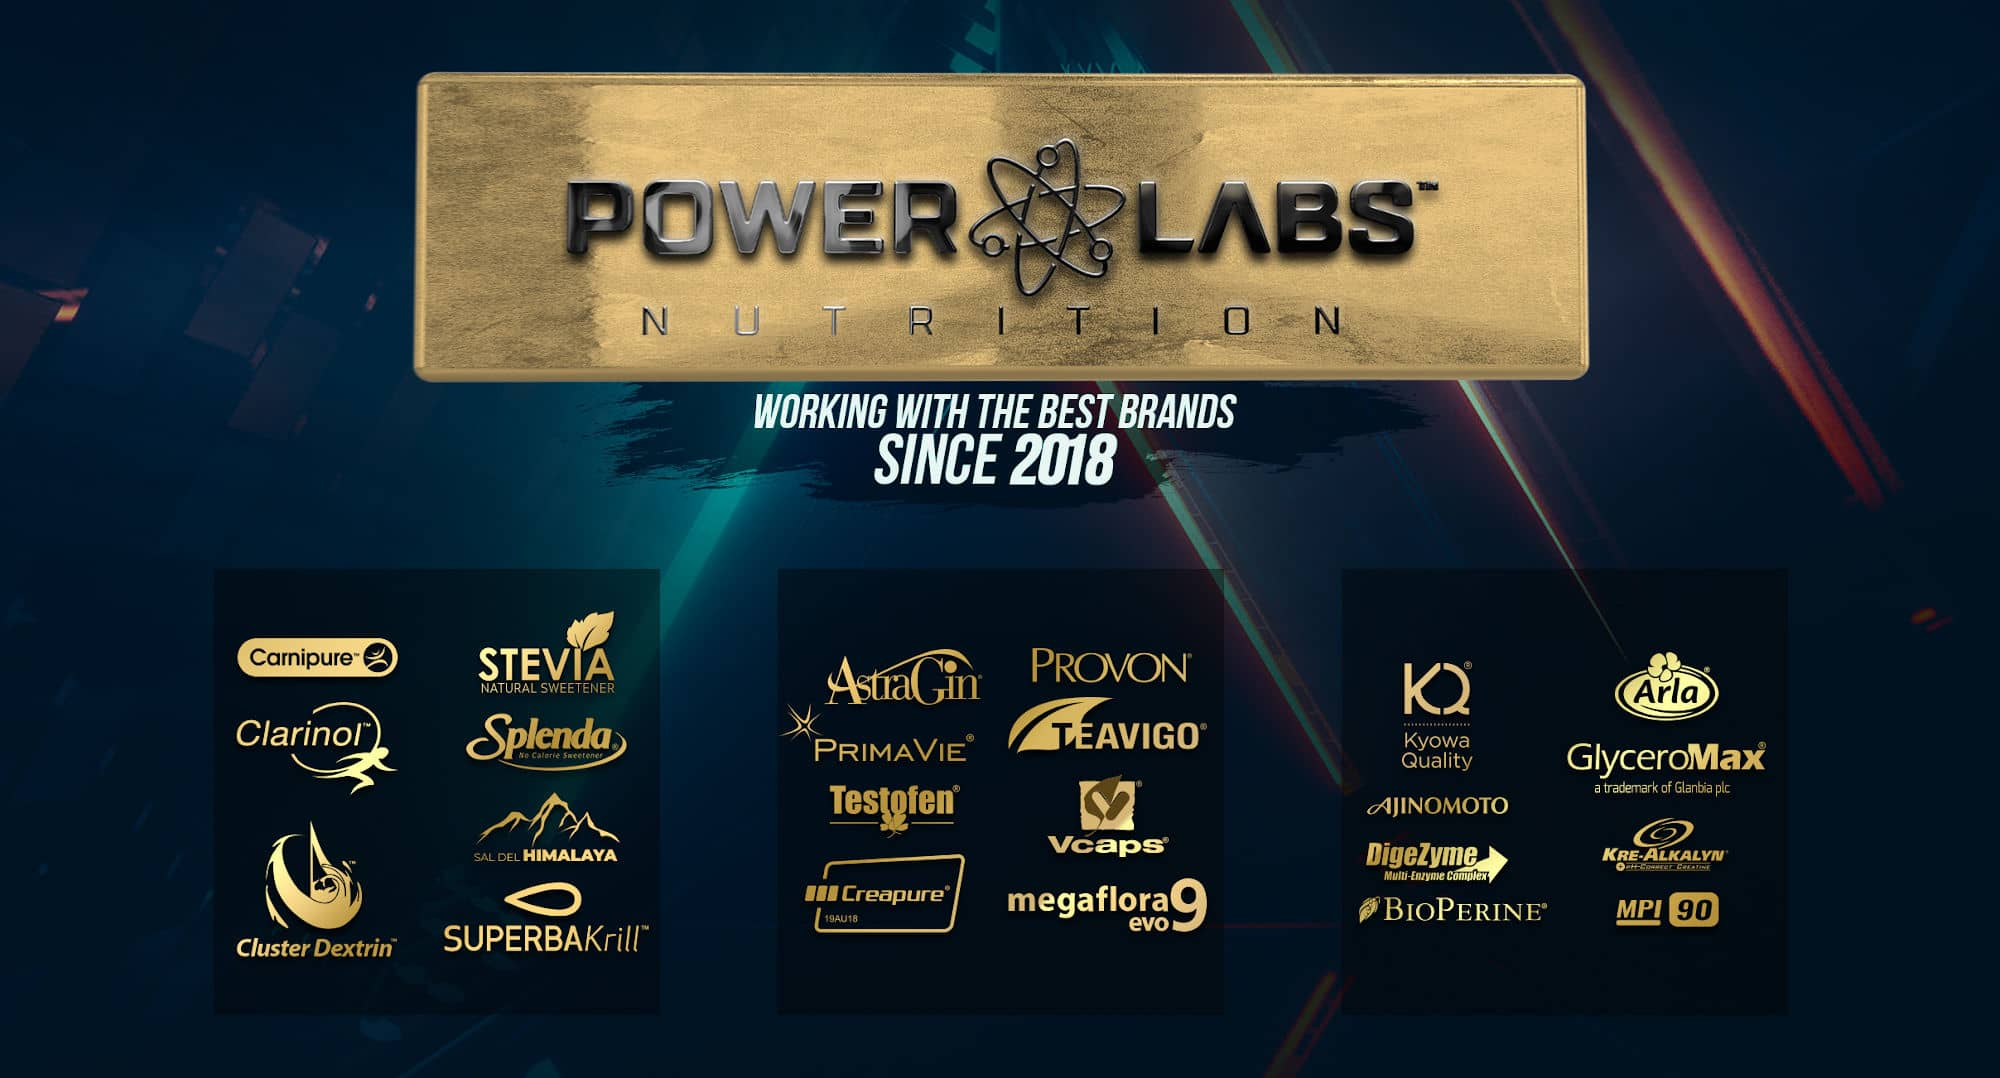 POWERLABS